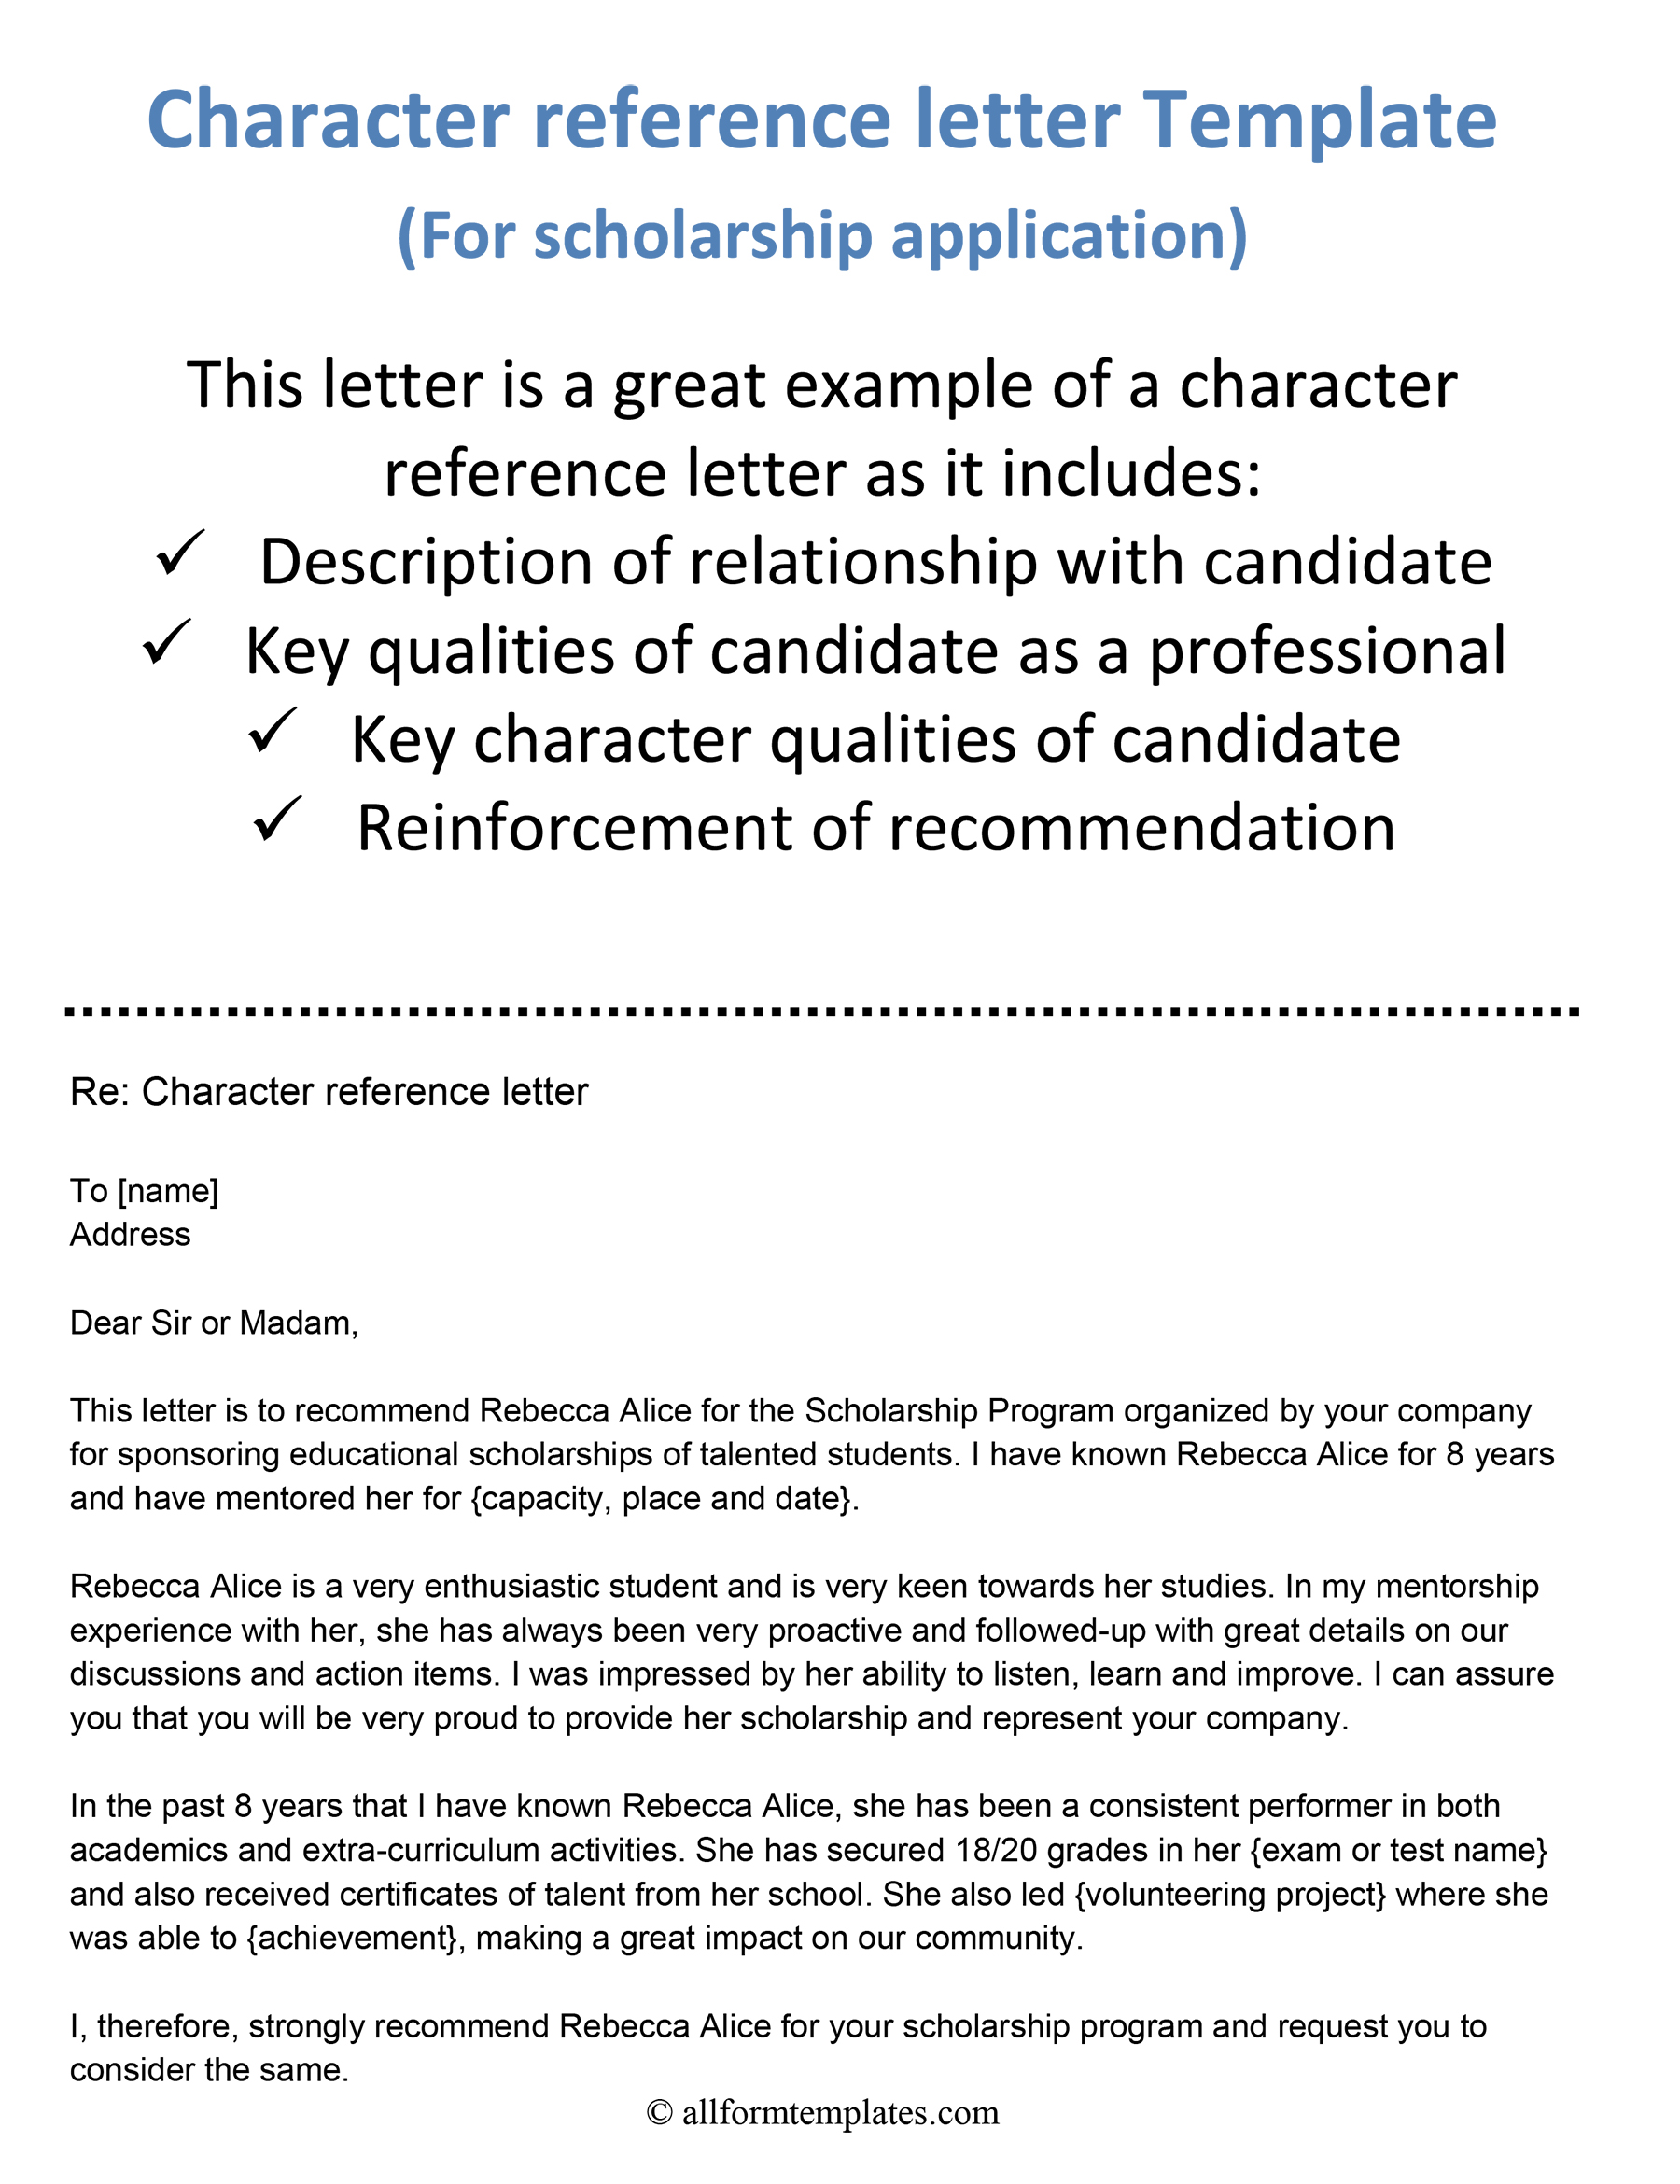 Personal Reference Letter Template Word from www.allformtemplates.com